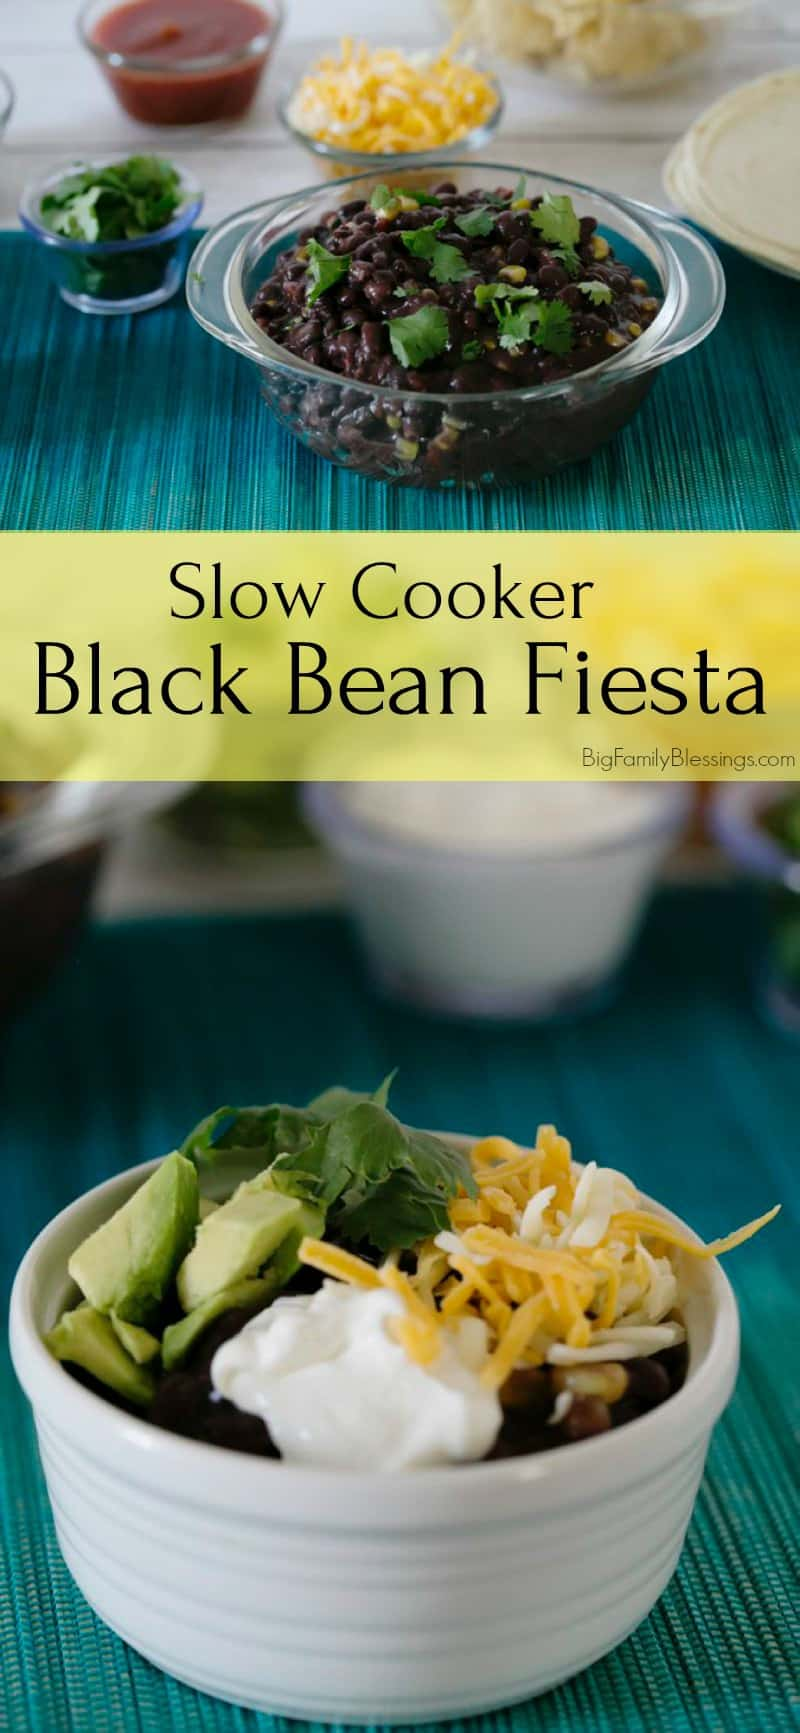 Slow Cooker Black Beans. Delicious and easy! Enjoy alone, or as part of a taco fixings station.